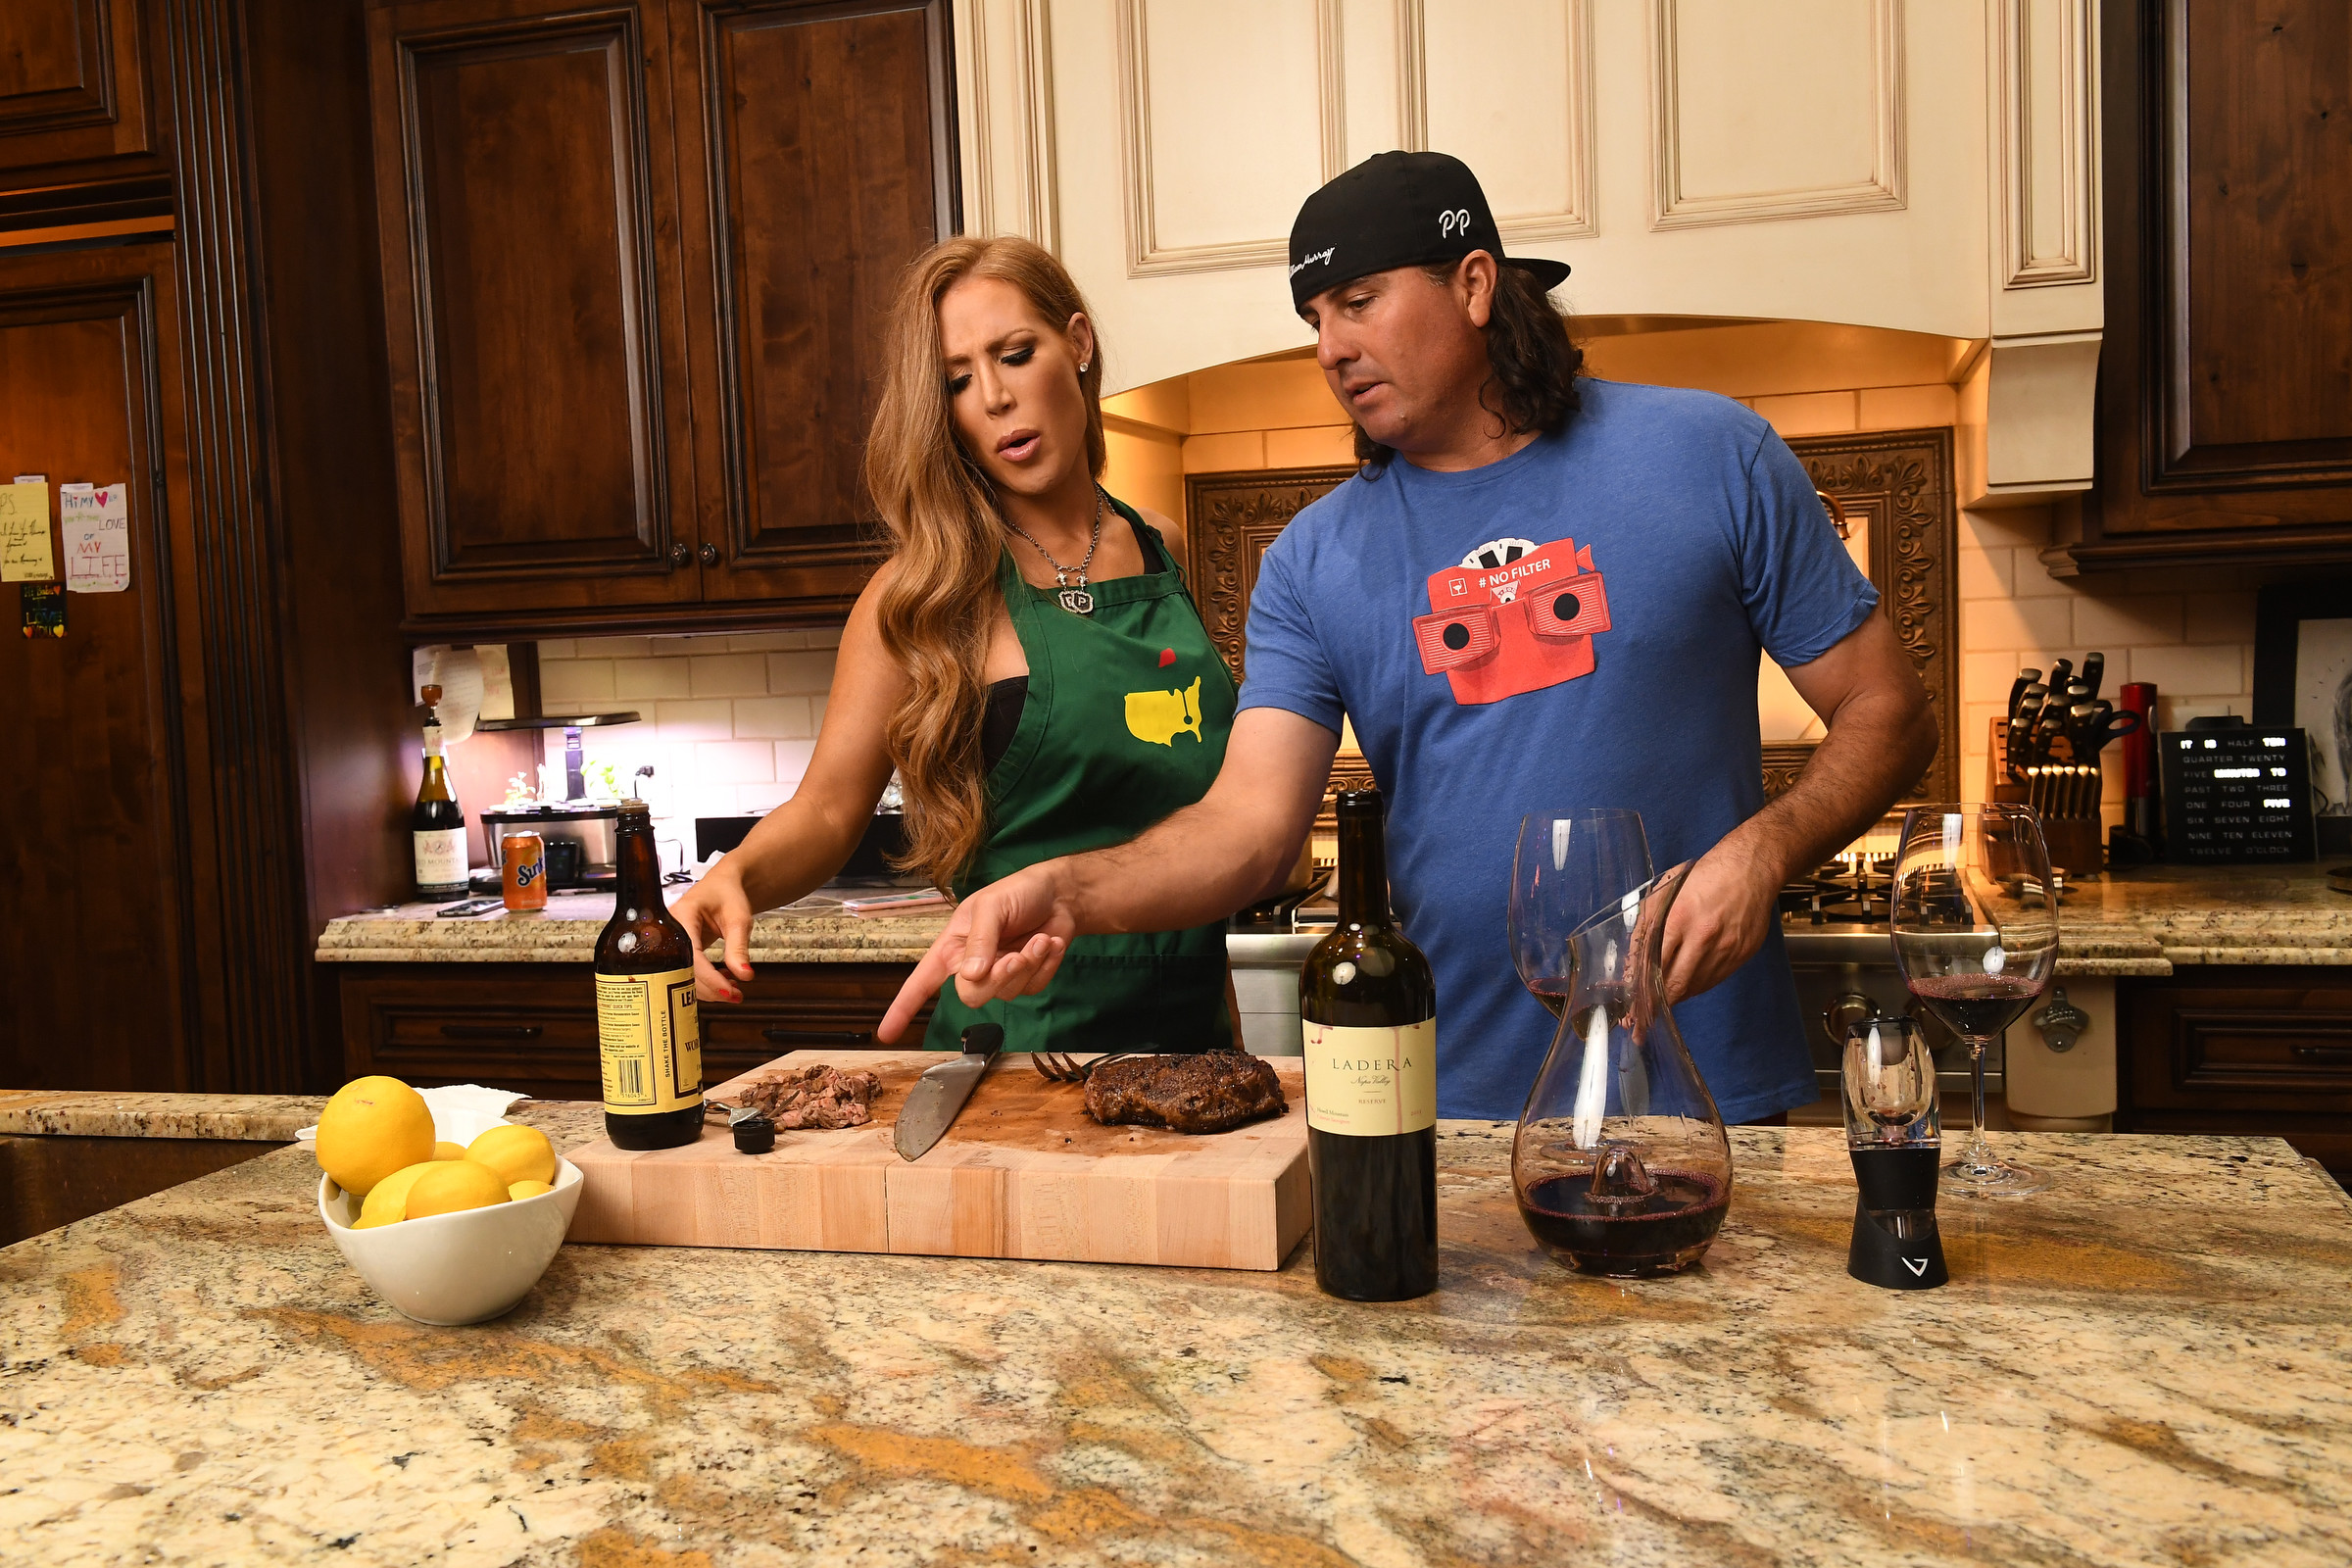 Stuffed pork chops, anyone? Perez often cooks for fellow pro, Jason Kokrak, his frequent roommate while traveling on tour.